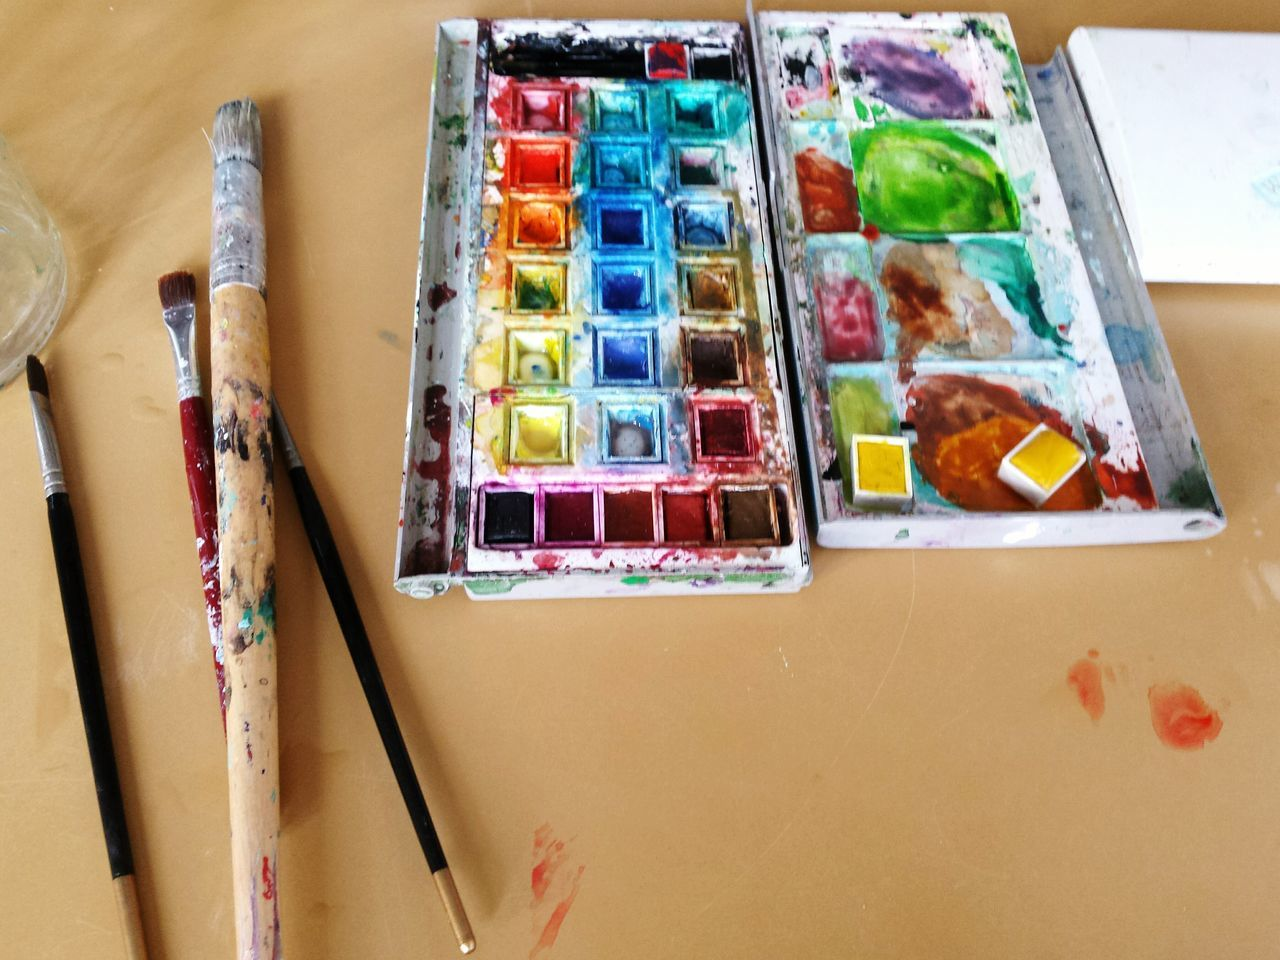 Multi Colored Paintbrush Art And Craft Creativity Palette Watercolor Paints Art And Craft Equipment Indoors  No People Colored Pencil Art And Craft Product Day Art Studio Brushes Table Art Studio Studio Shot Studio Photography Pallette Paint Palette